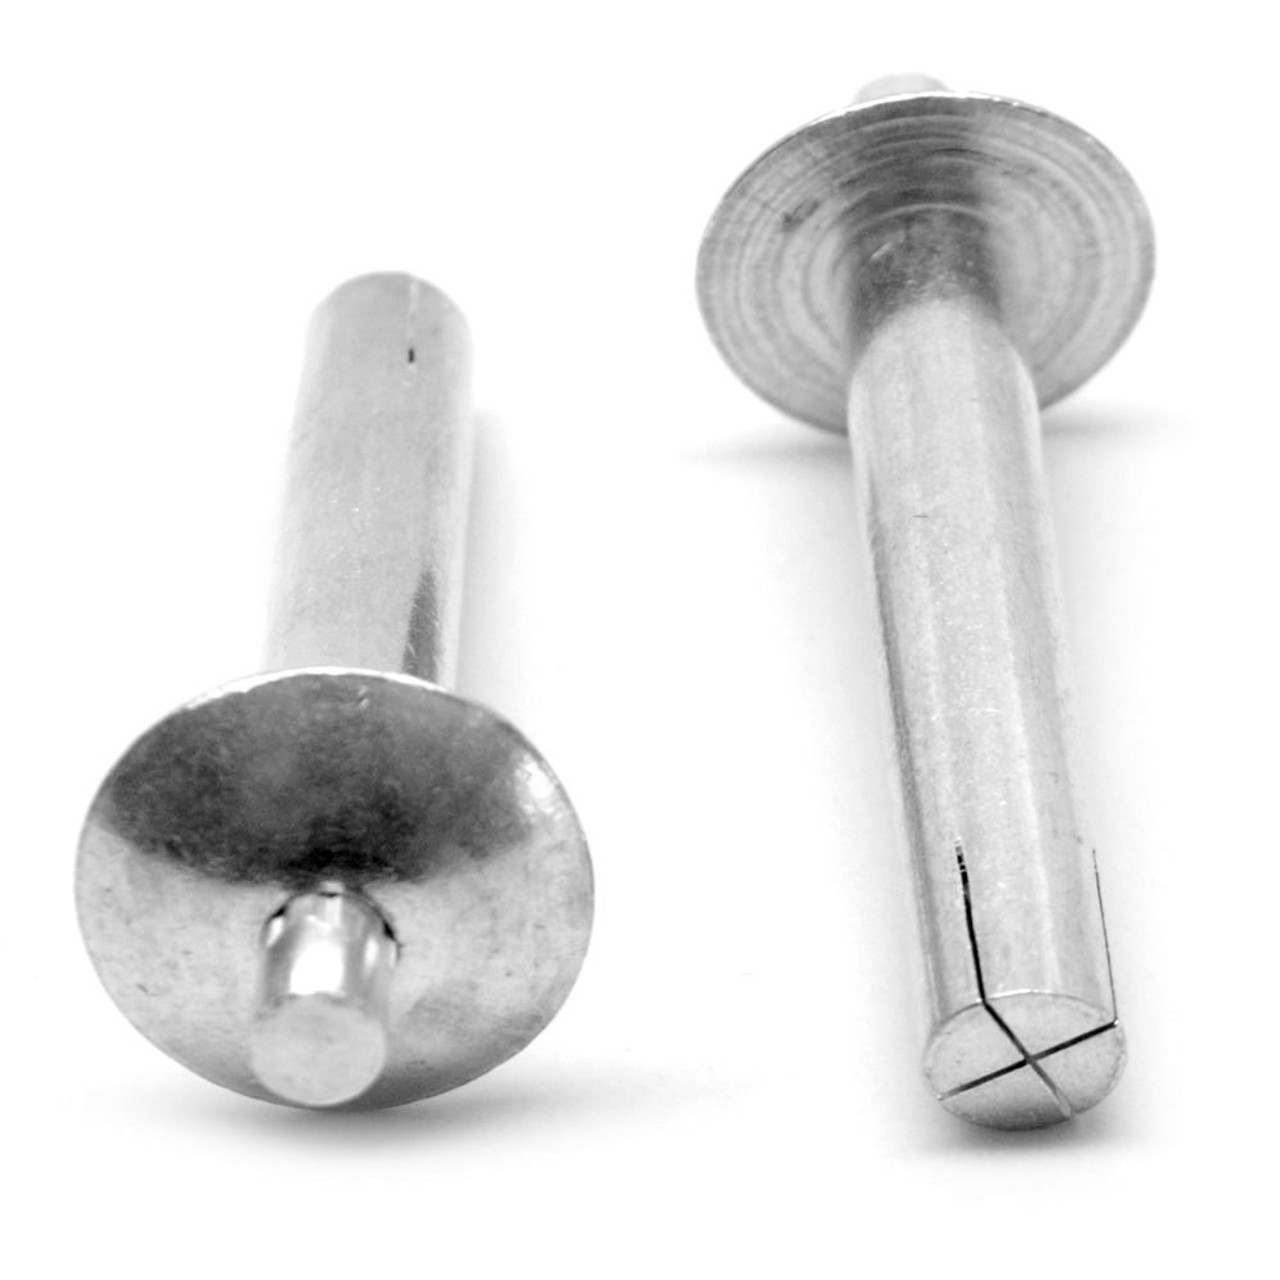 1/4 x 3/32 Drive Pin Rivet Brazier Head with Stainless Pin Aluminum